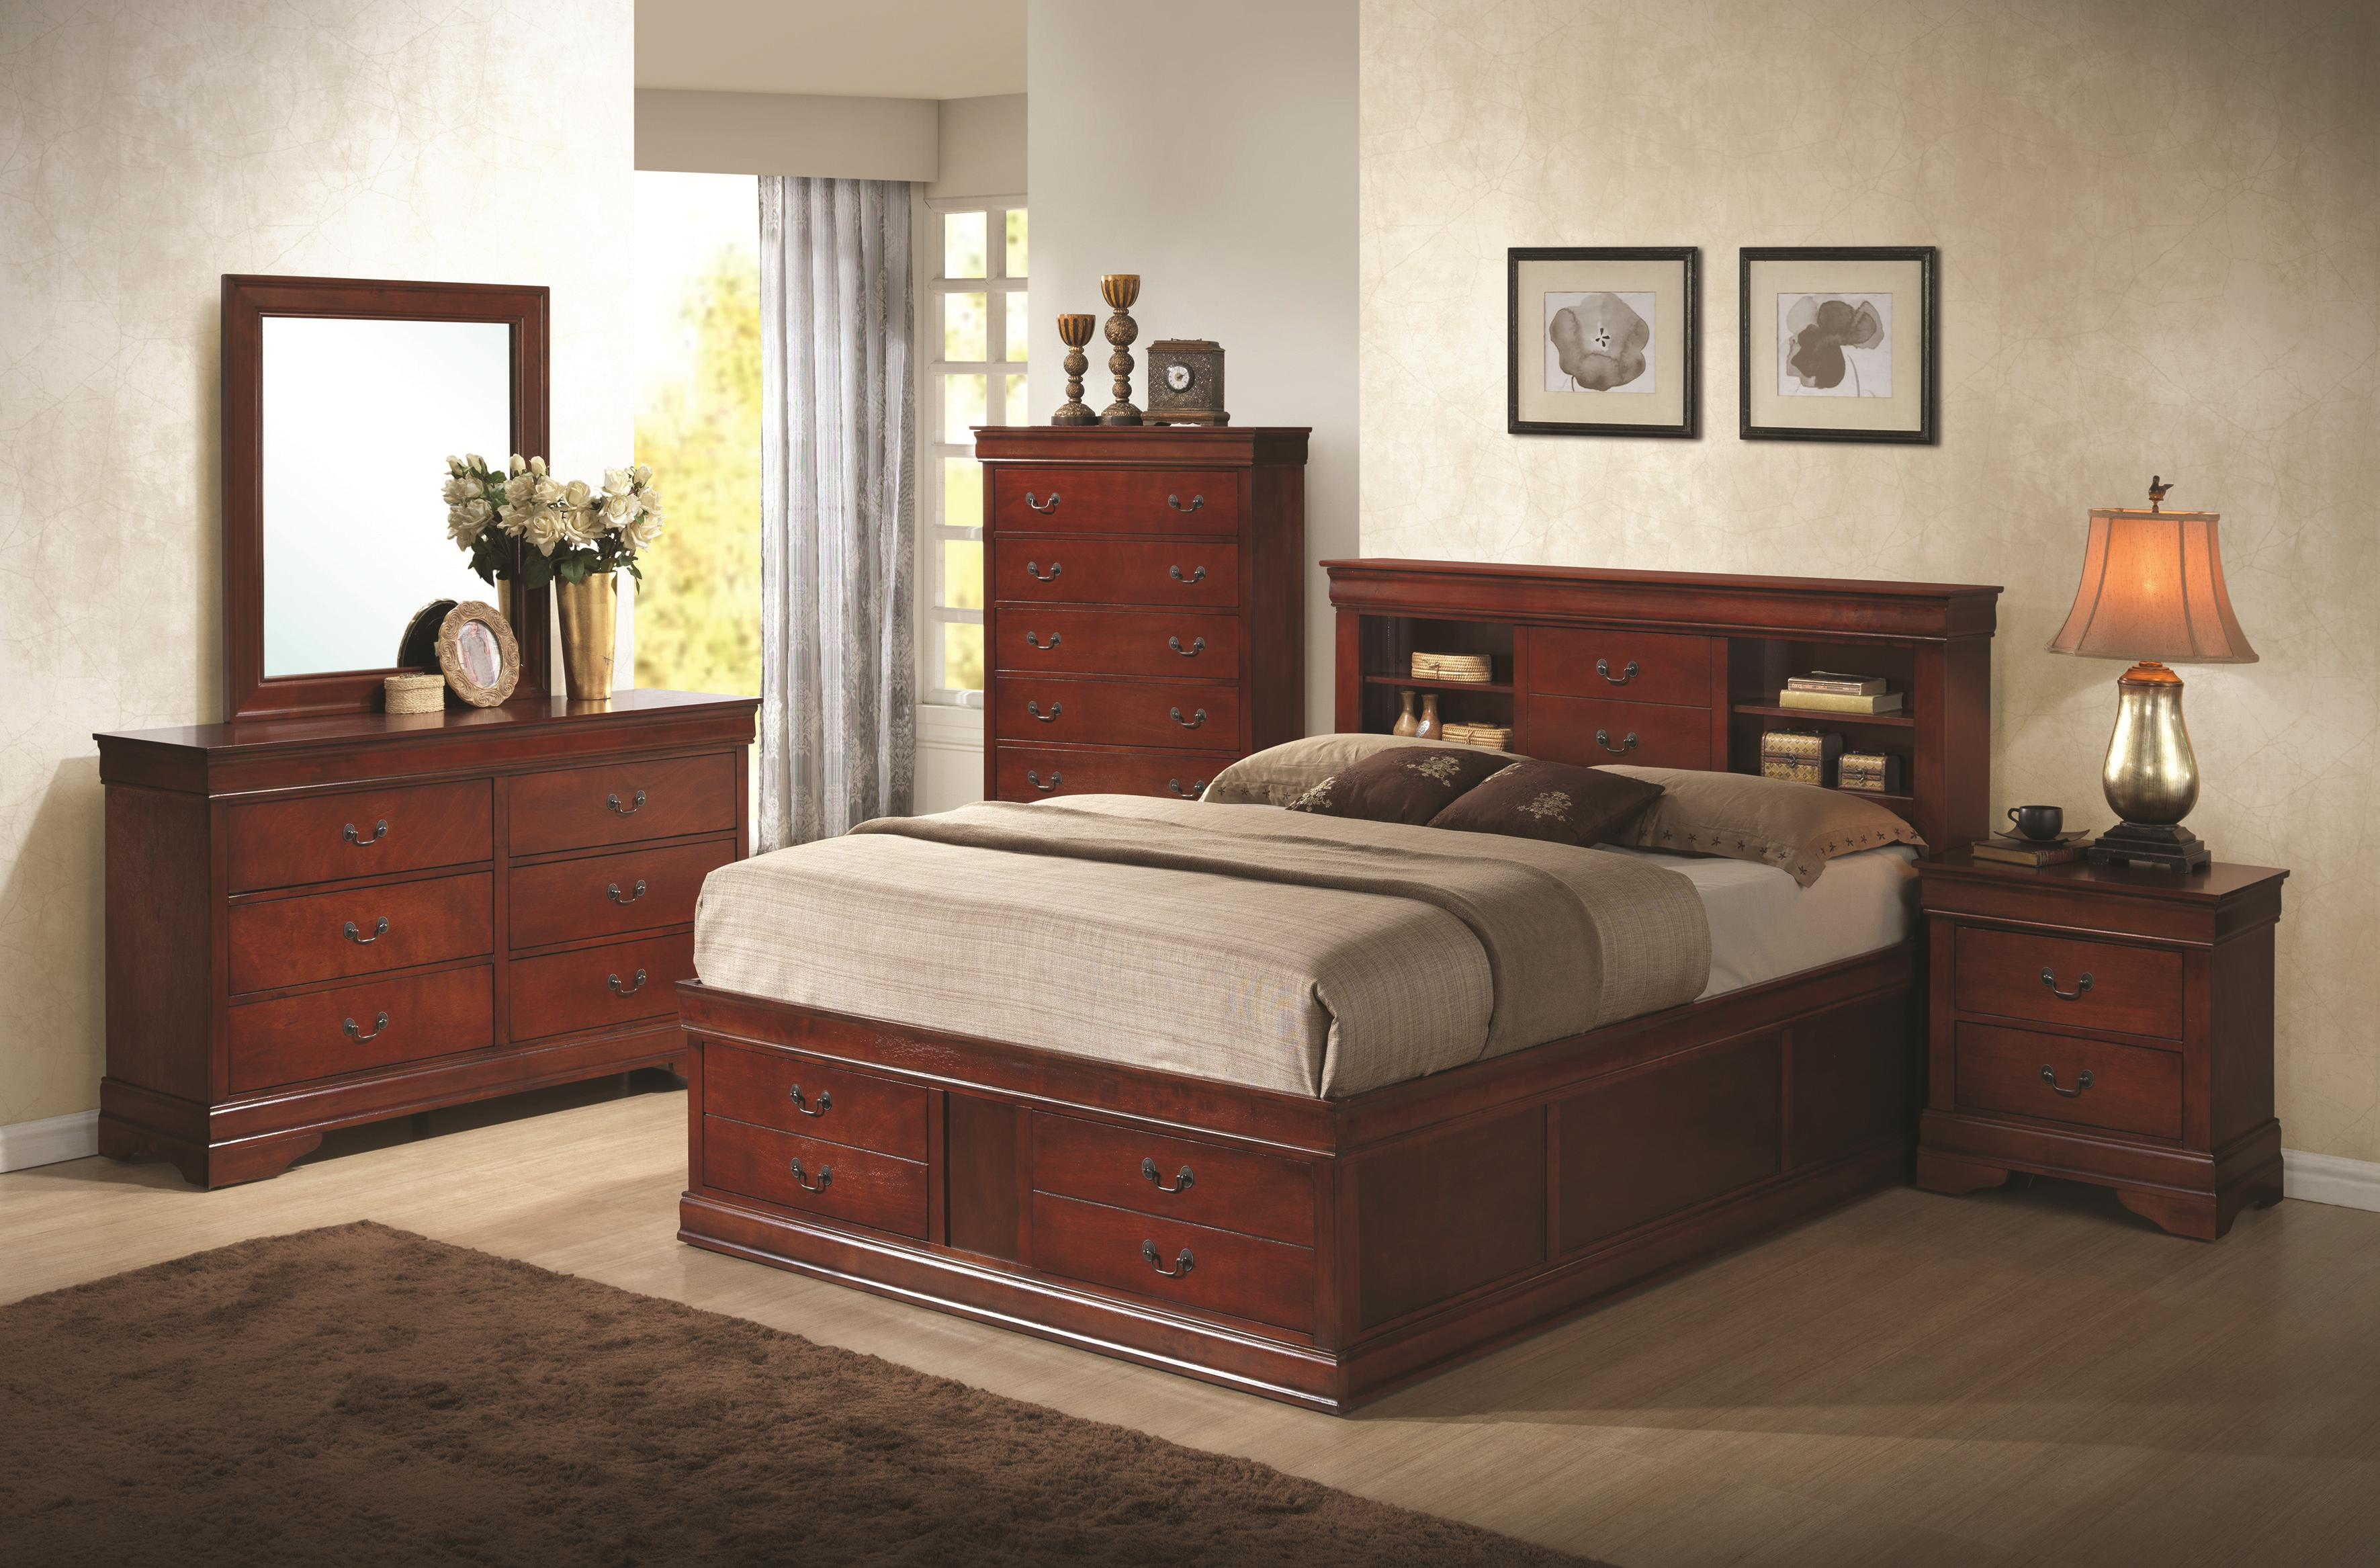 Coaster Louis Philippe King Bedroom Group - Item Number: 203960C K Bedroom Group 1